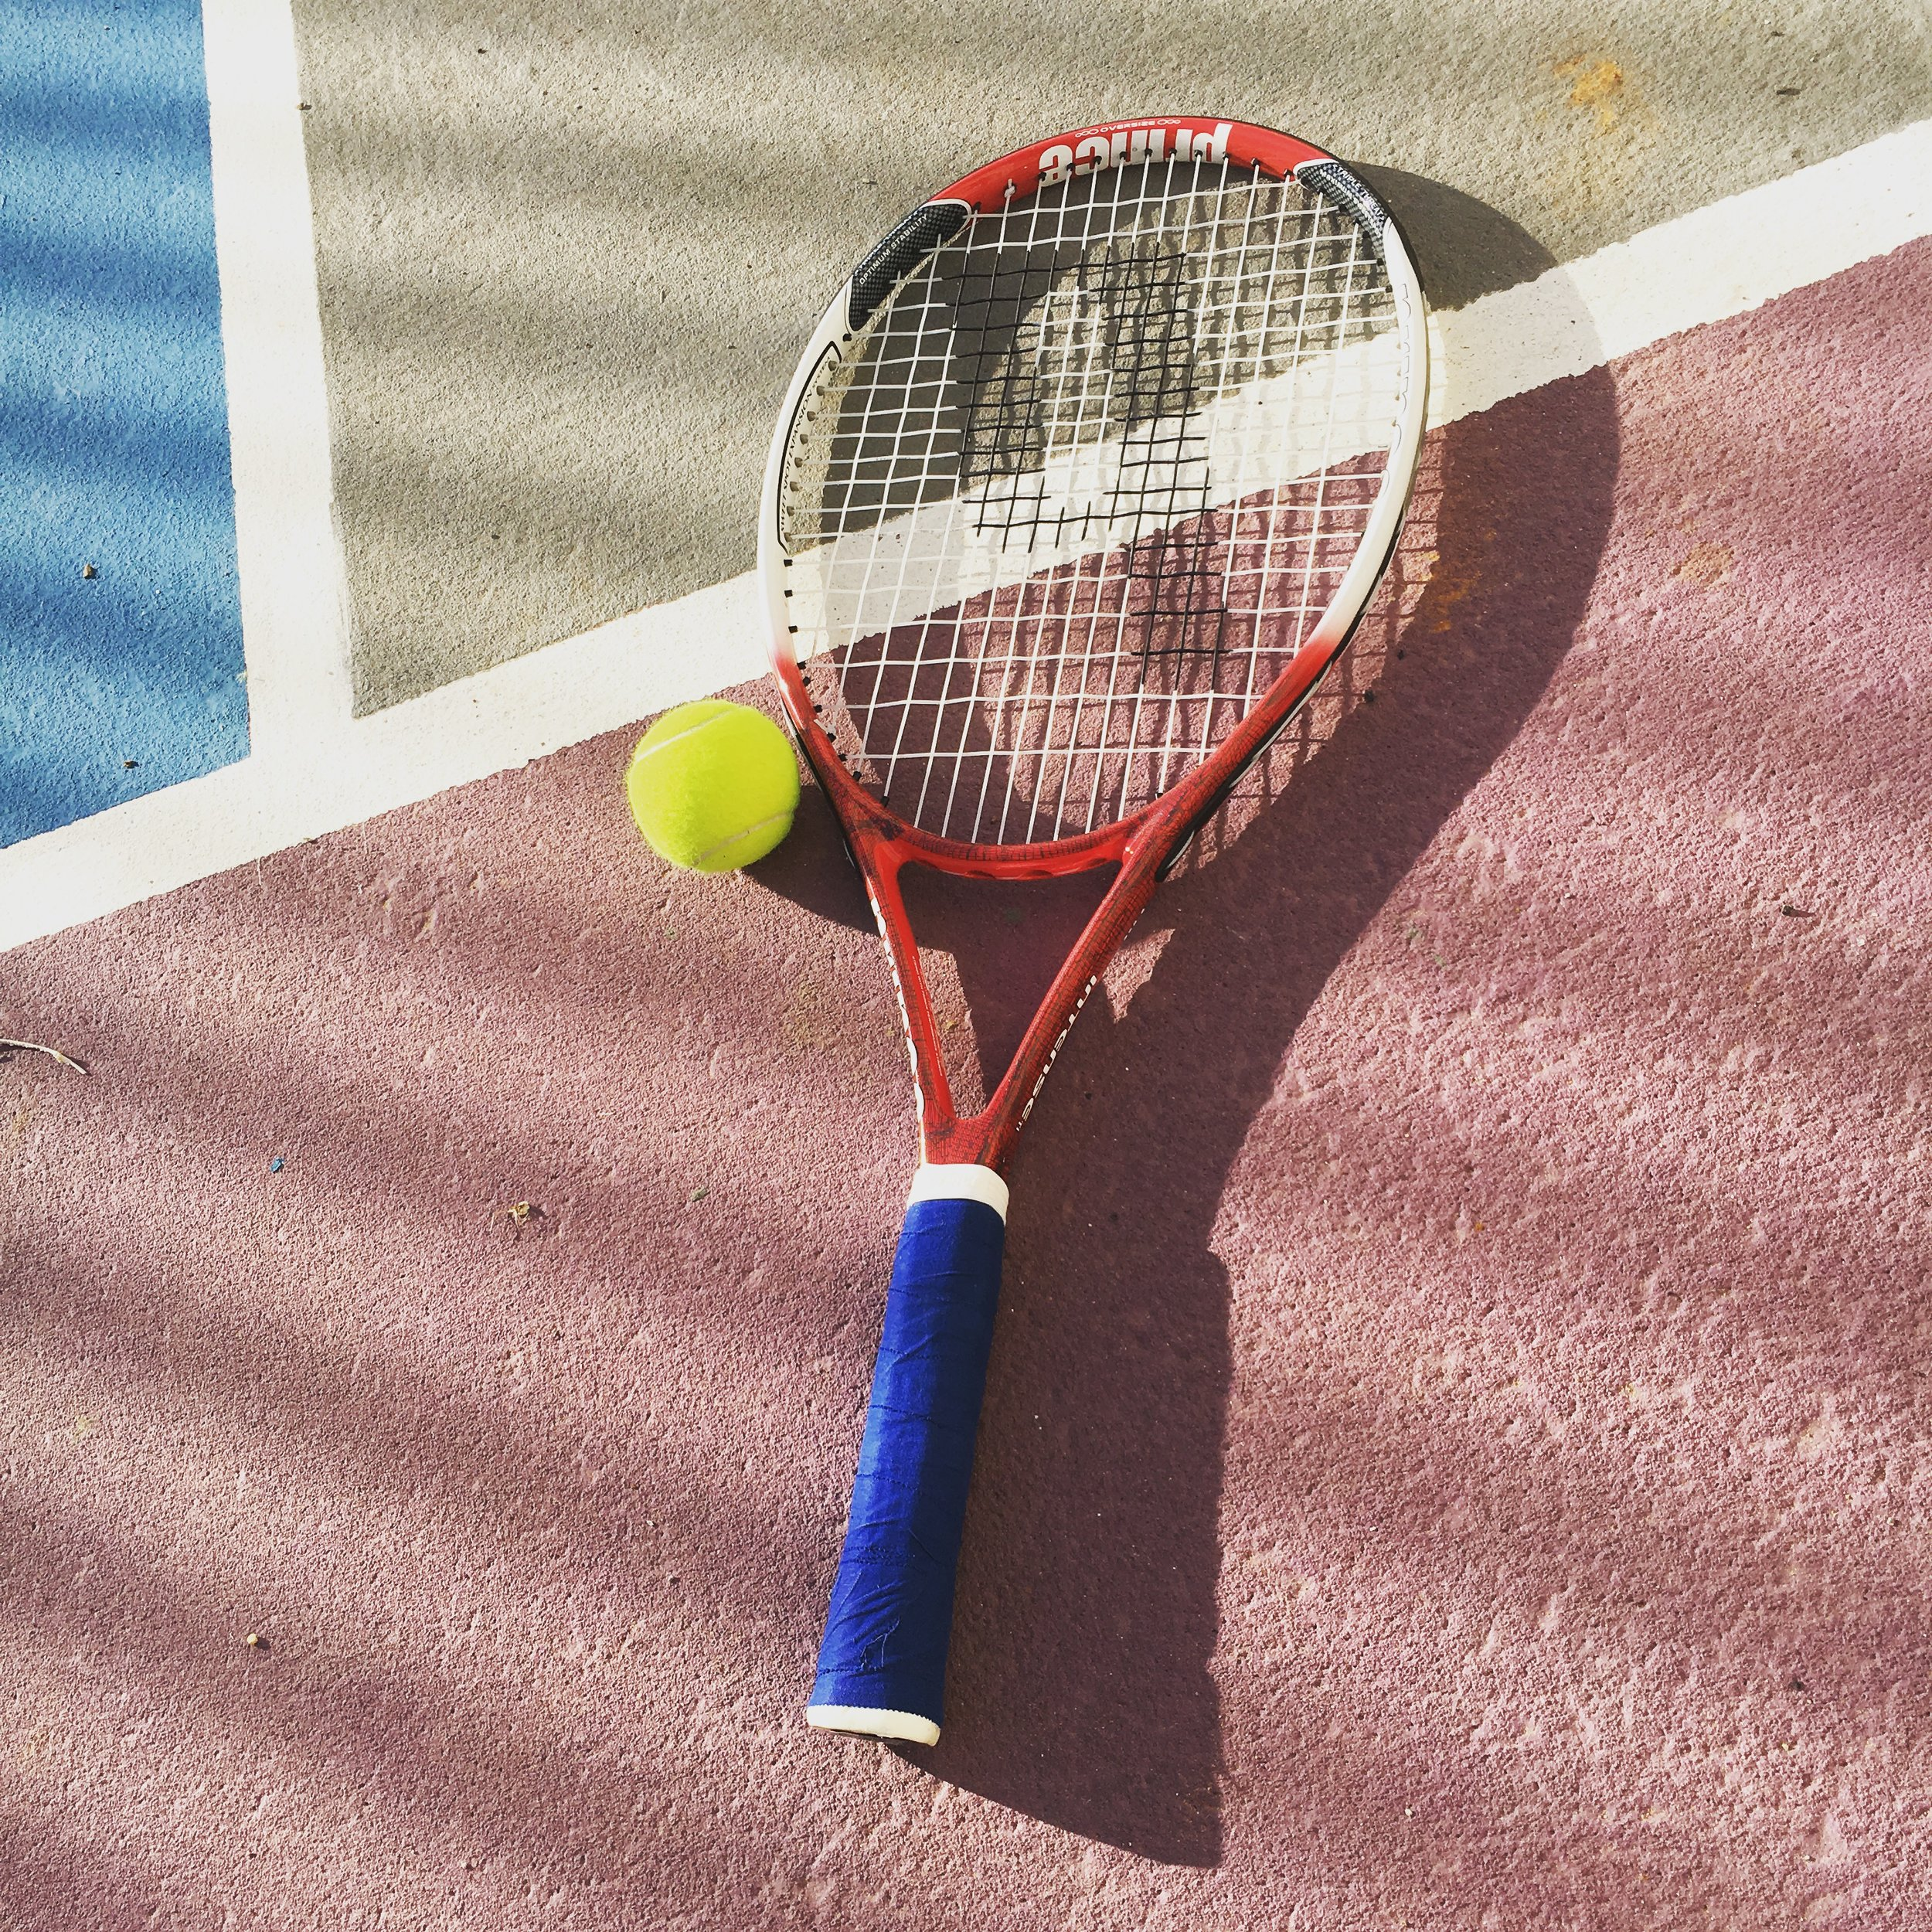 Tennis & Beach  - At Sesuit Harbor Tennis Center we have USPTA and USPTR certified teaching pros available for one hour lessons and private clinics. *Subject to availability.